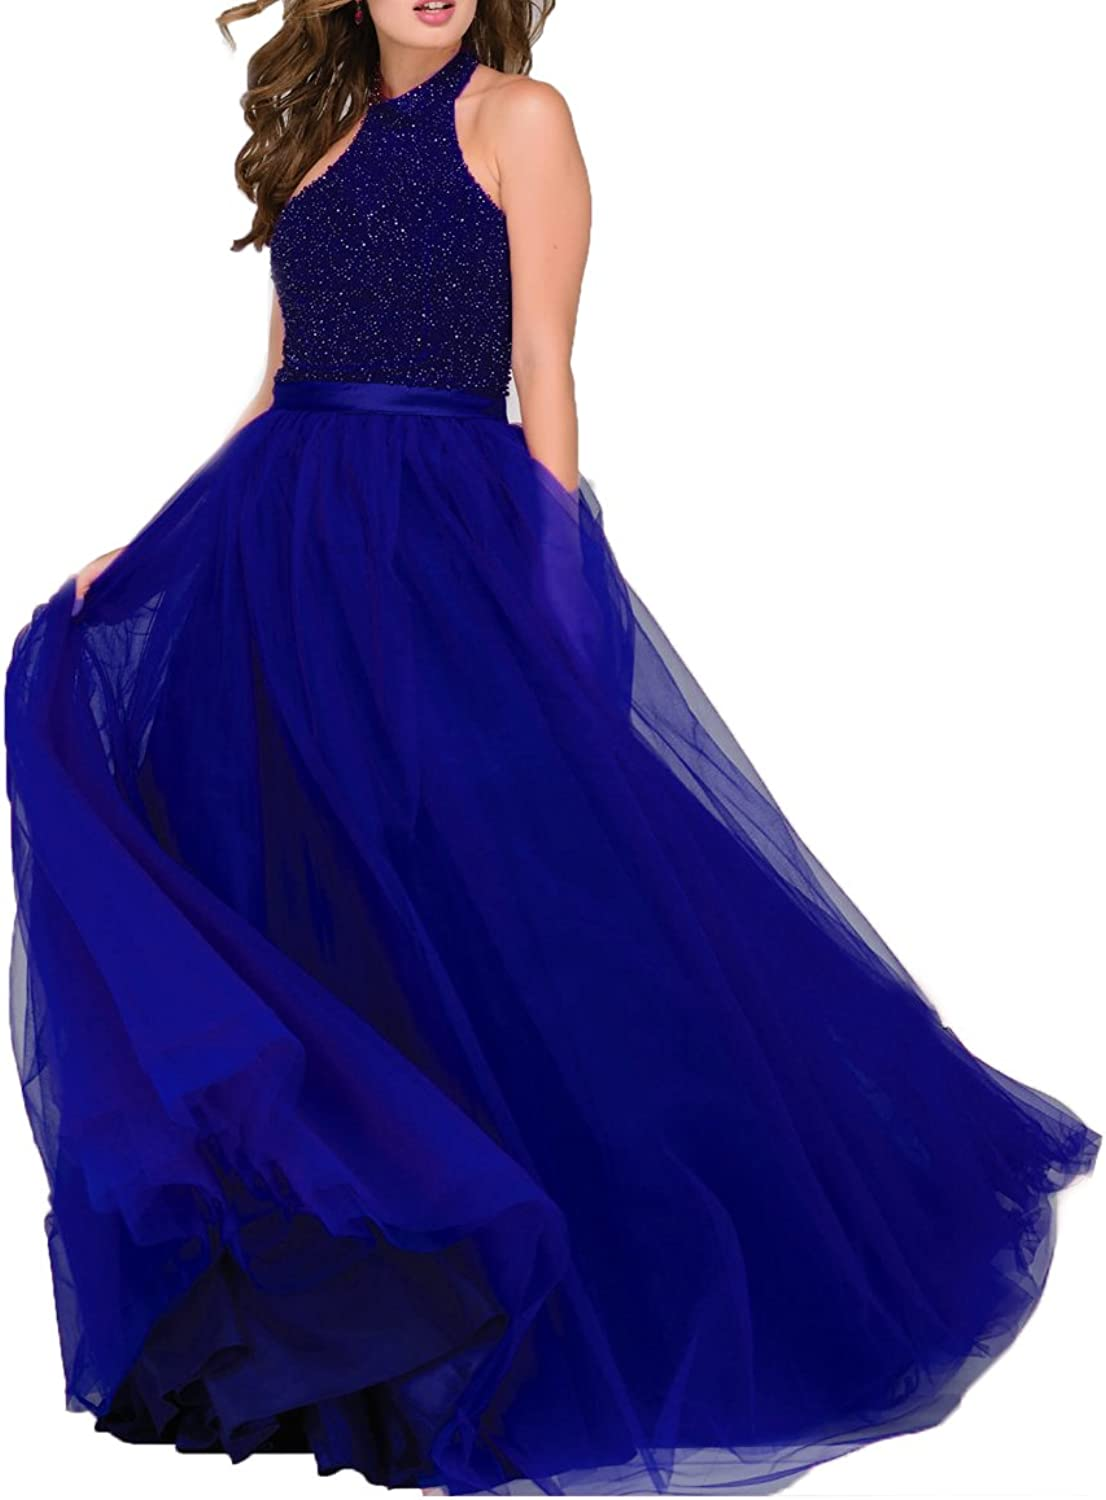 Beauty Bridal Women's Halter Embellished Full Length Long Prom Dress Tulle Evening Gown L055